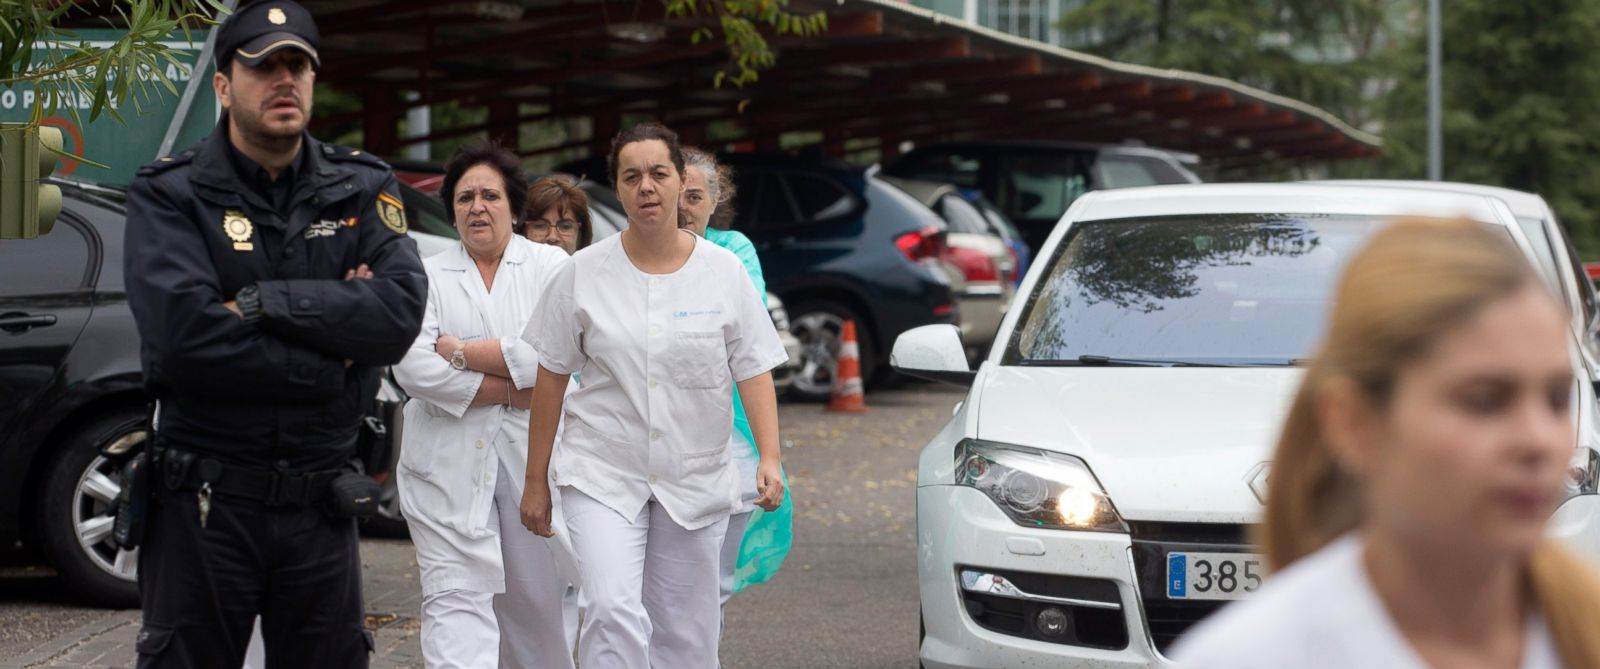 PHOTO: Hospital staff walk out past police guarding the entrance to a protest outside the Carlos III hospital in Madrid, Spain, Oct. 7, 2014, where a Spanish nurse who is believed to have contracted the ebola virus is being treated.